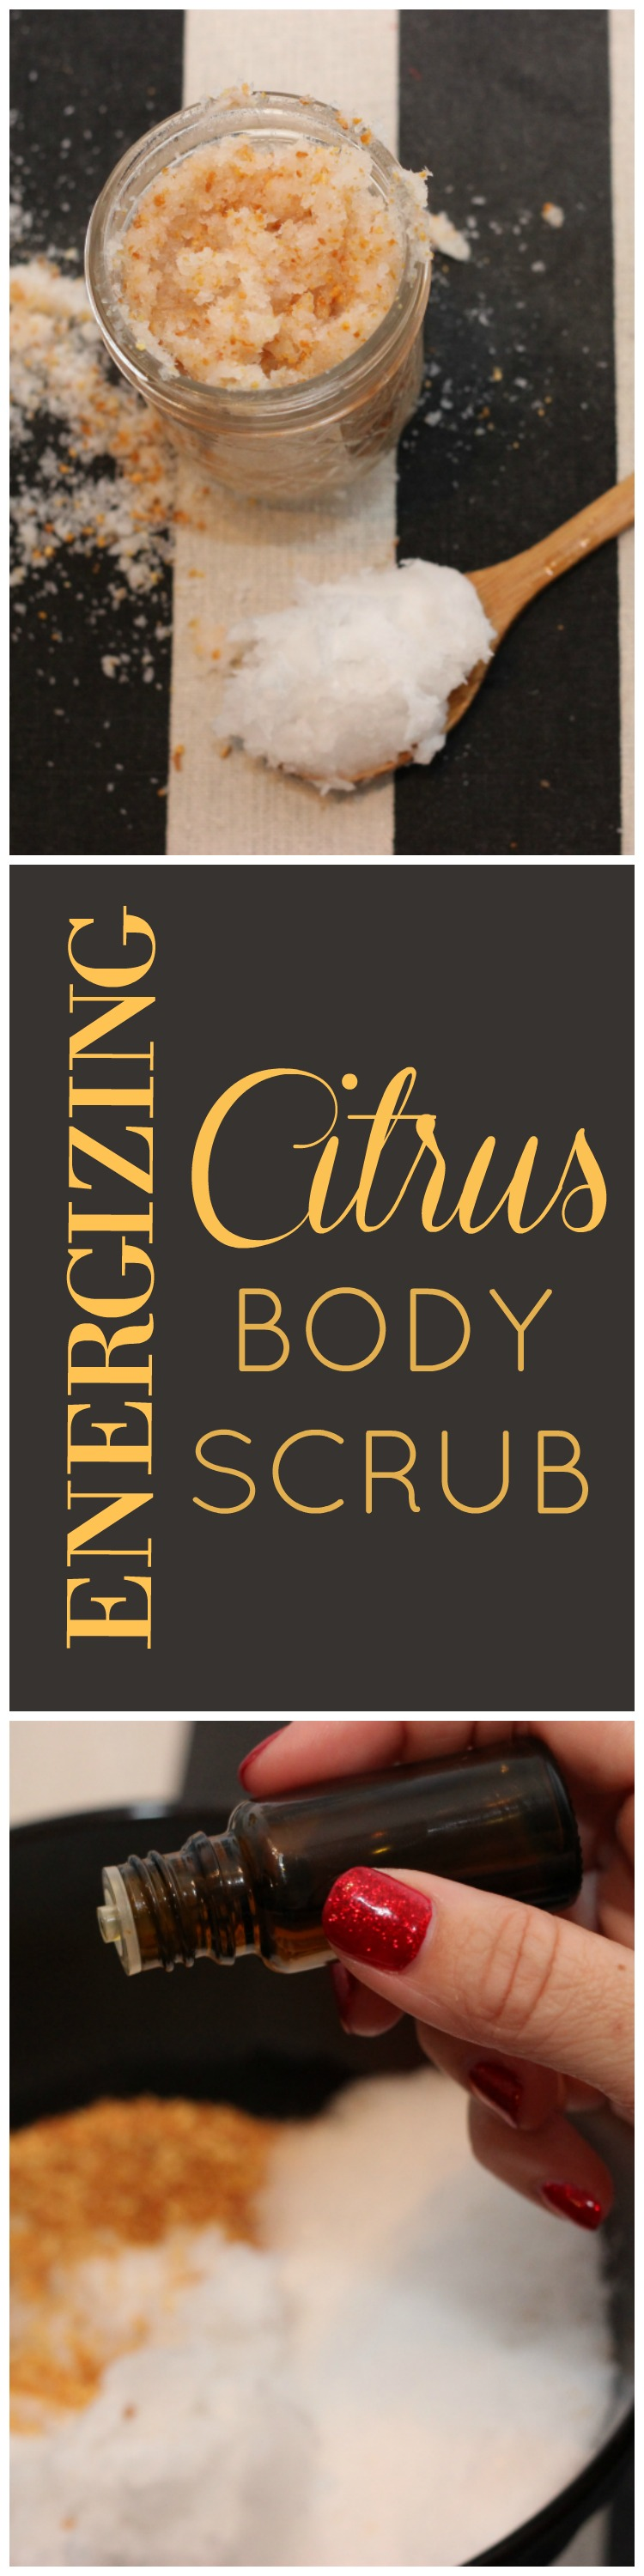 Citrus body scrub, organic tampons, grapefruit body scrub, how to get soft legs when you shave